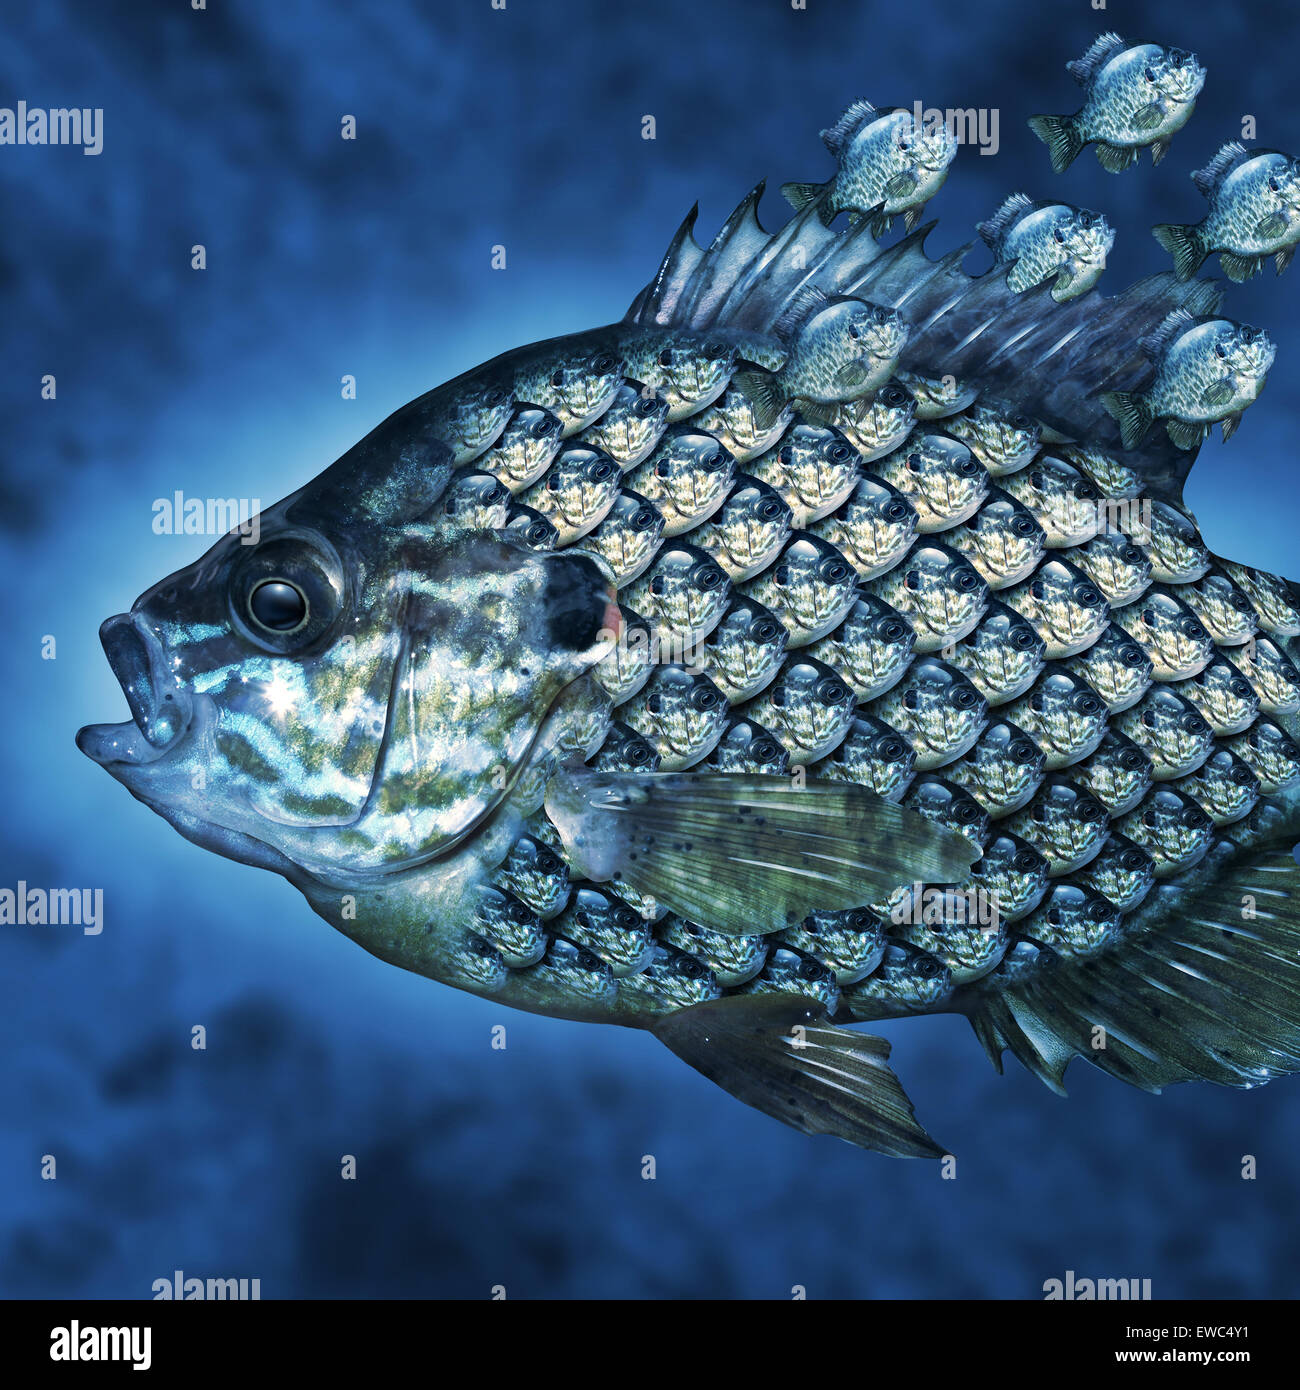 Group Leadership Management business concept as a big fish carrying a group of smaller fish as scales on the aquatic - Stock Image